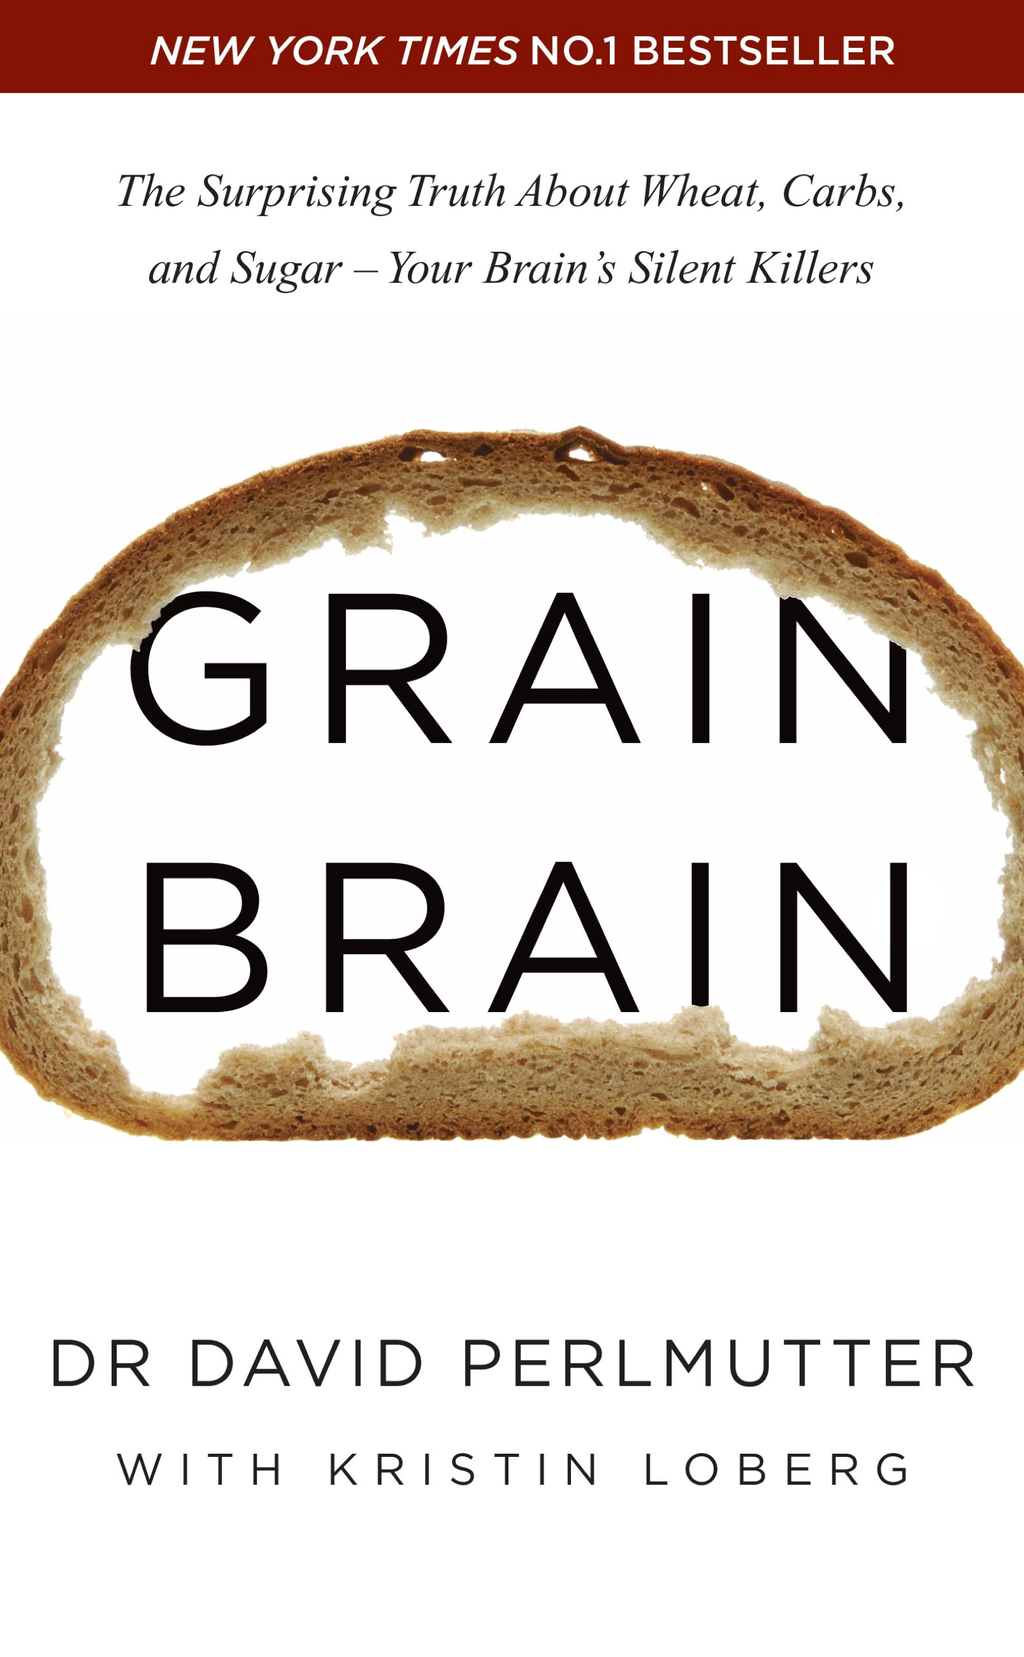 Grain Brain The Surprising Truth about Wheat,  Carbs,  and Sugar - Your Brain's Silent Killers